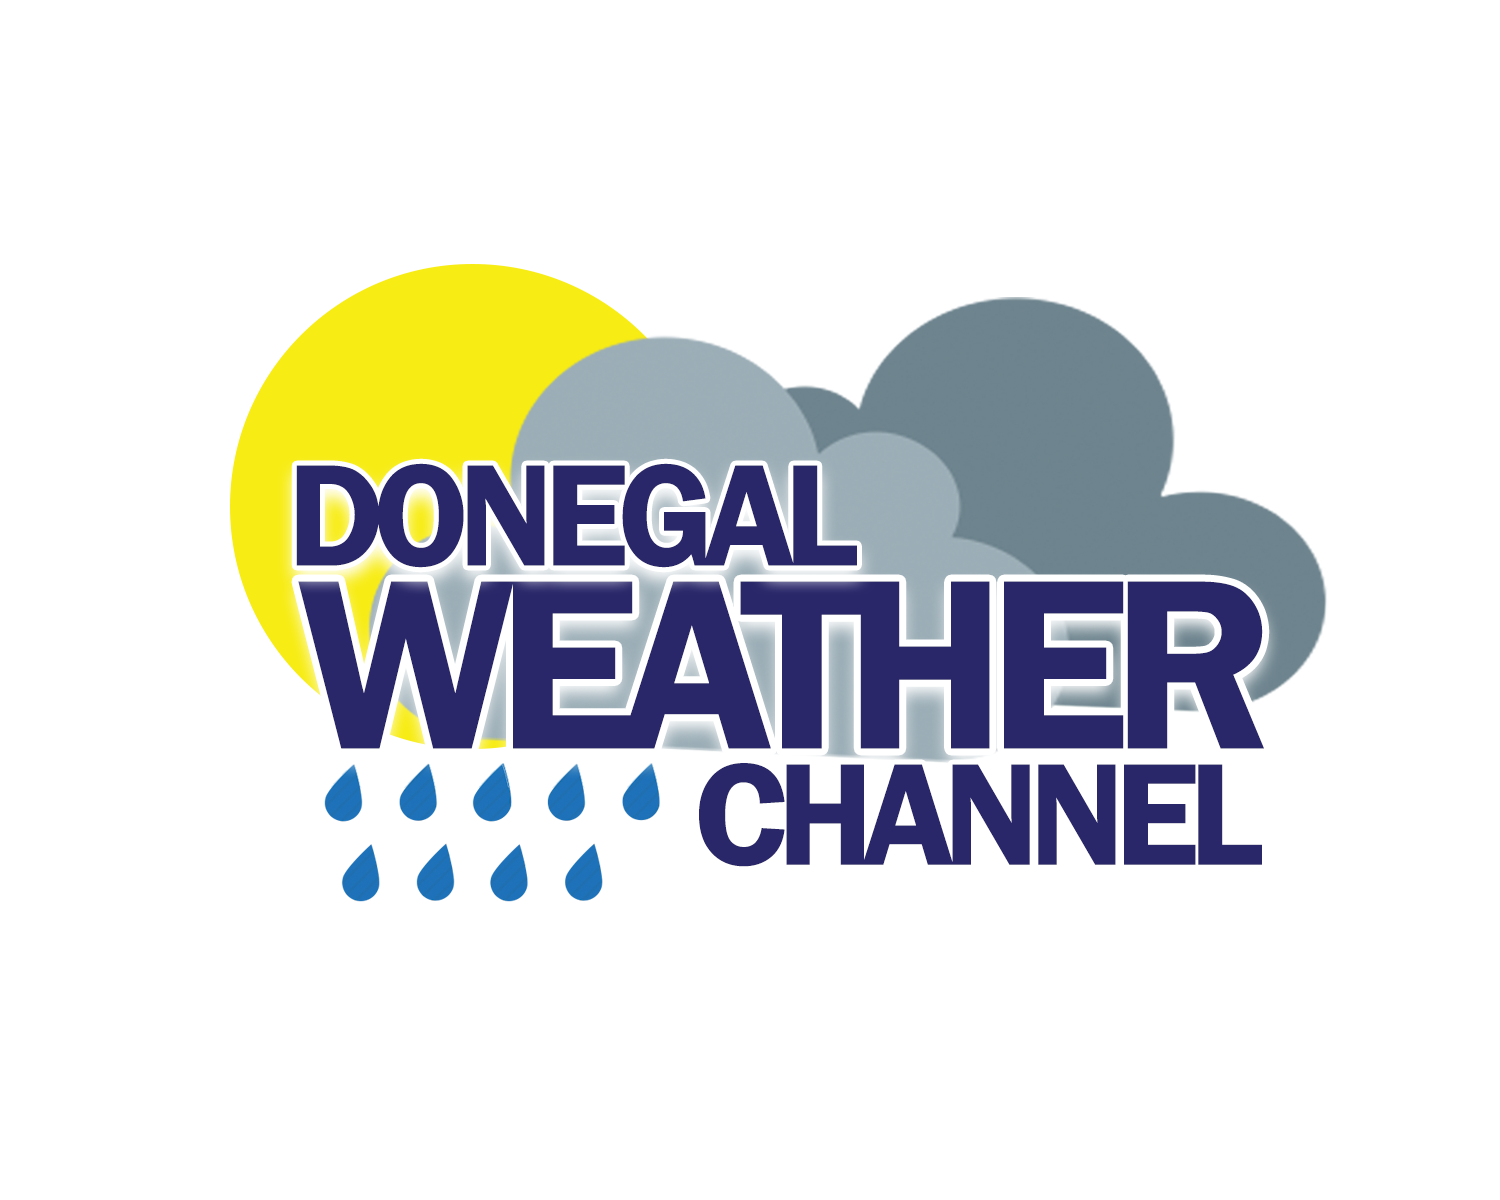 Donegal Weather Channel